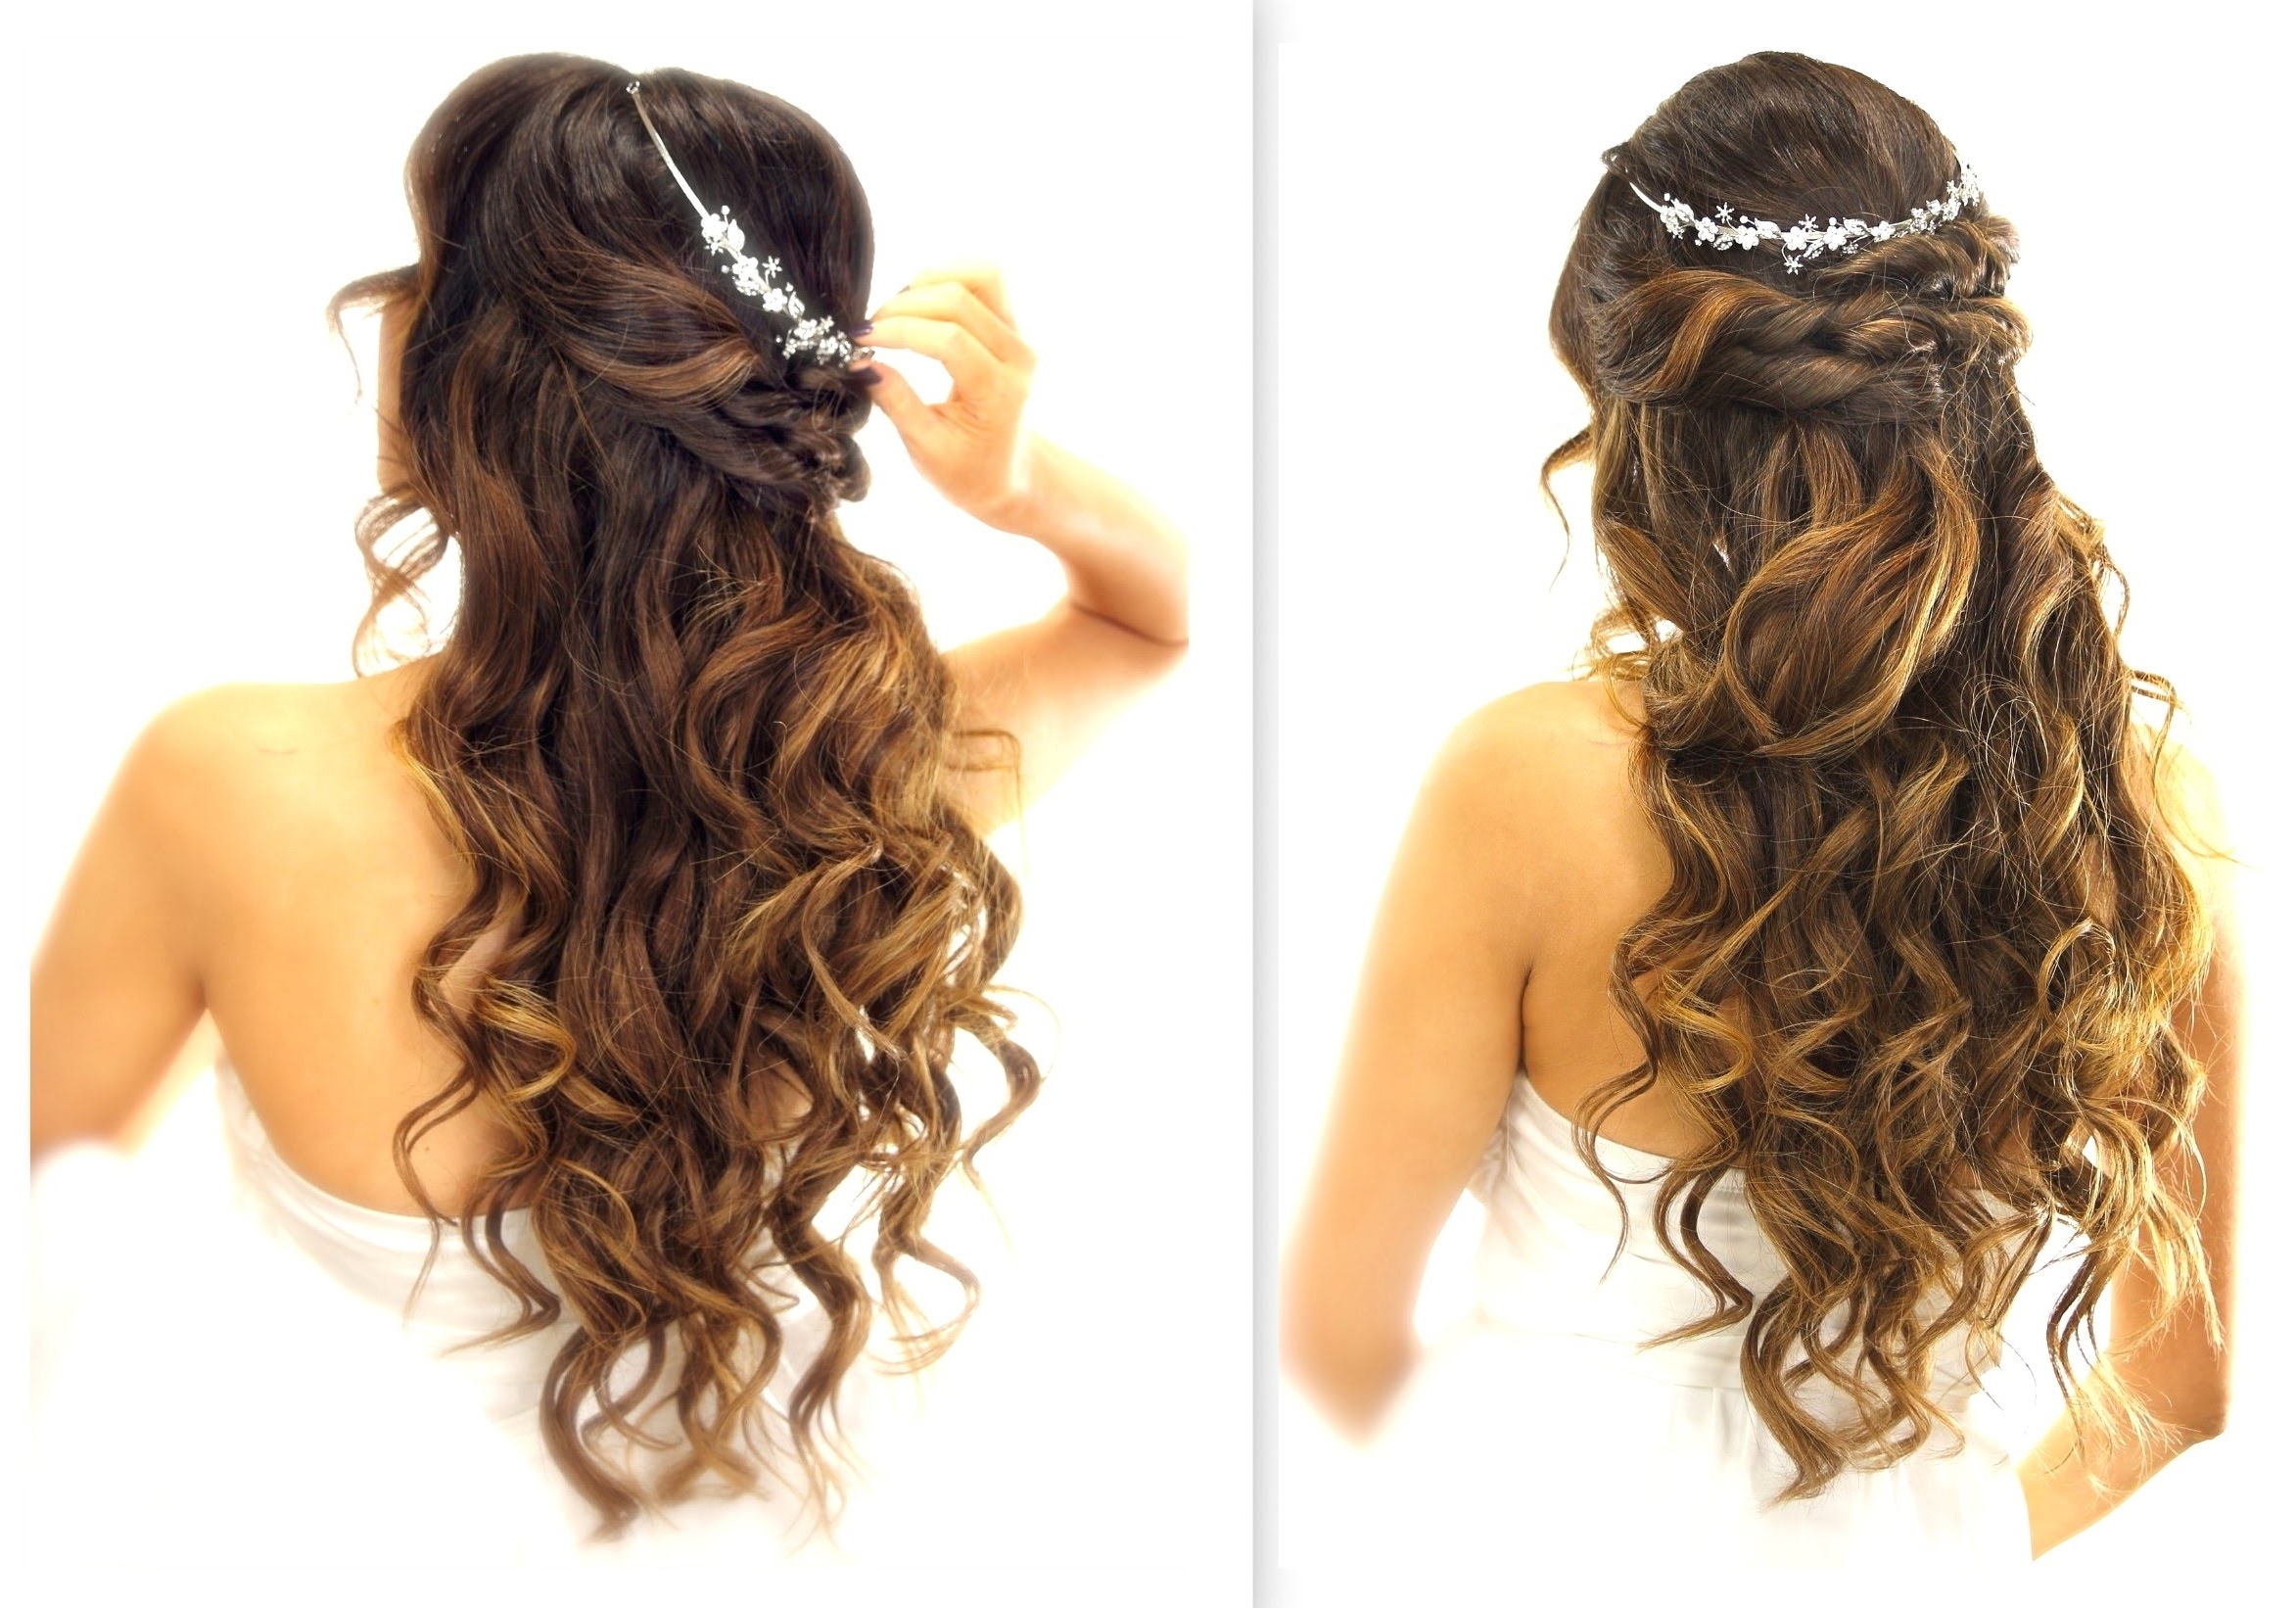 2018 Wedding Down Hairstyles For Medium Length Hair Within ☆ Easy Wedding Half Updo Hairstyle With Curls (View 8 of 15)